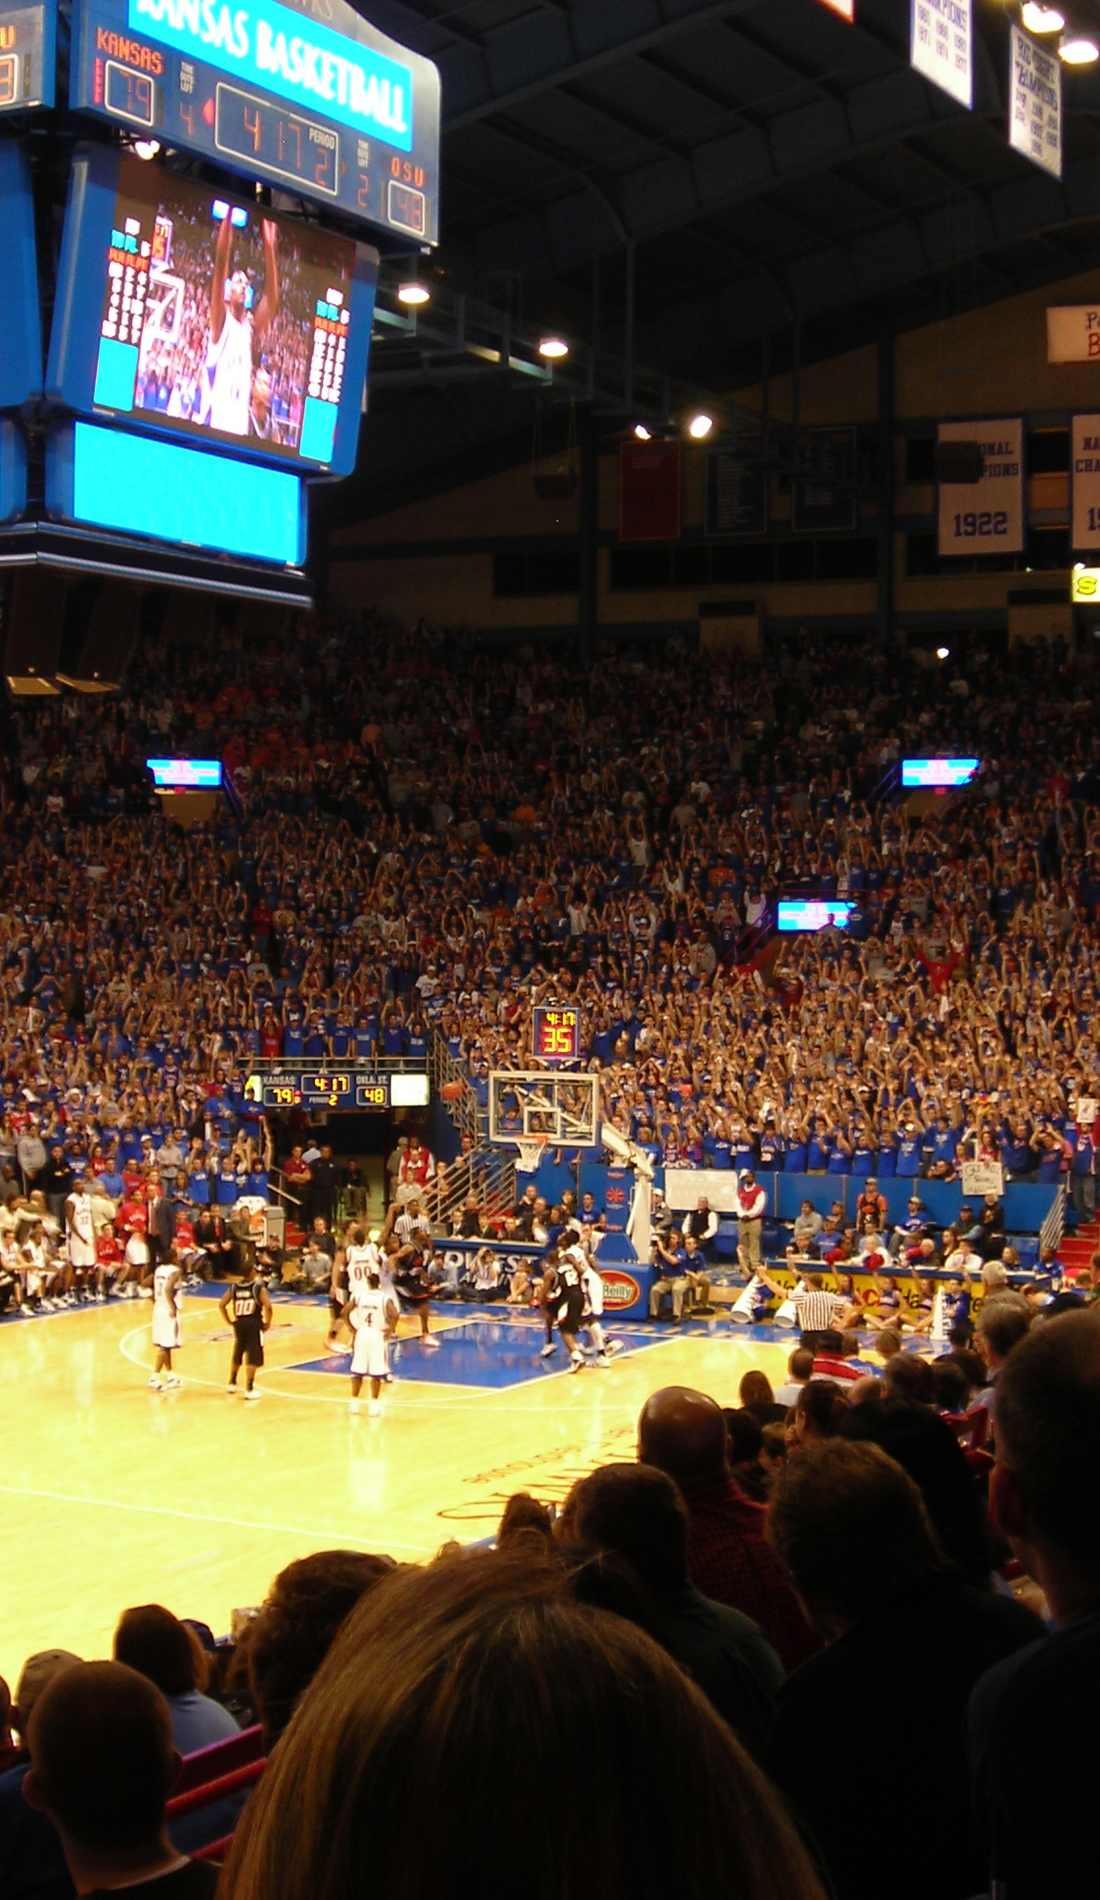 A Kansas Jayhawks Basketball live event